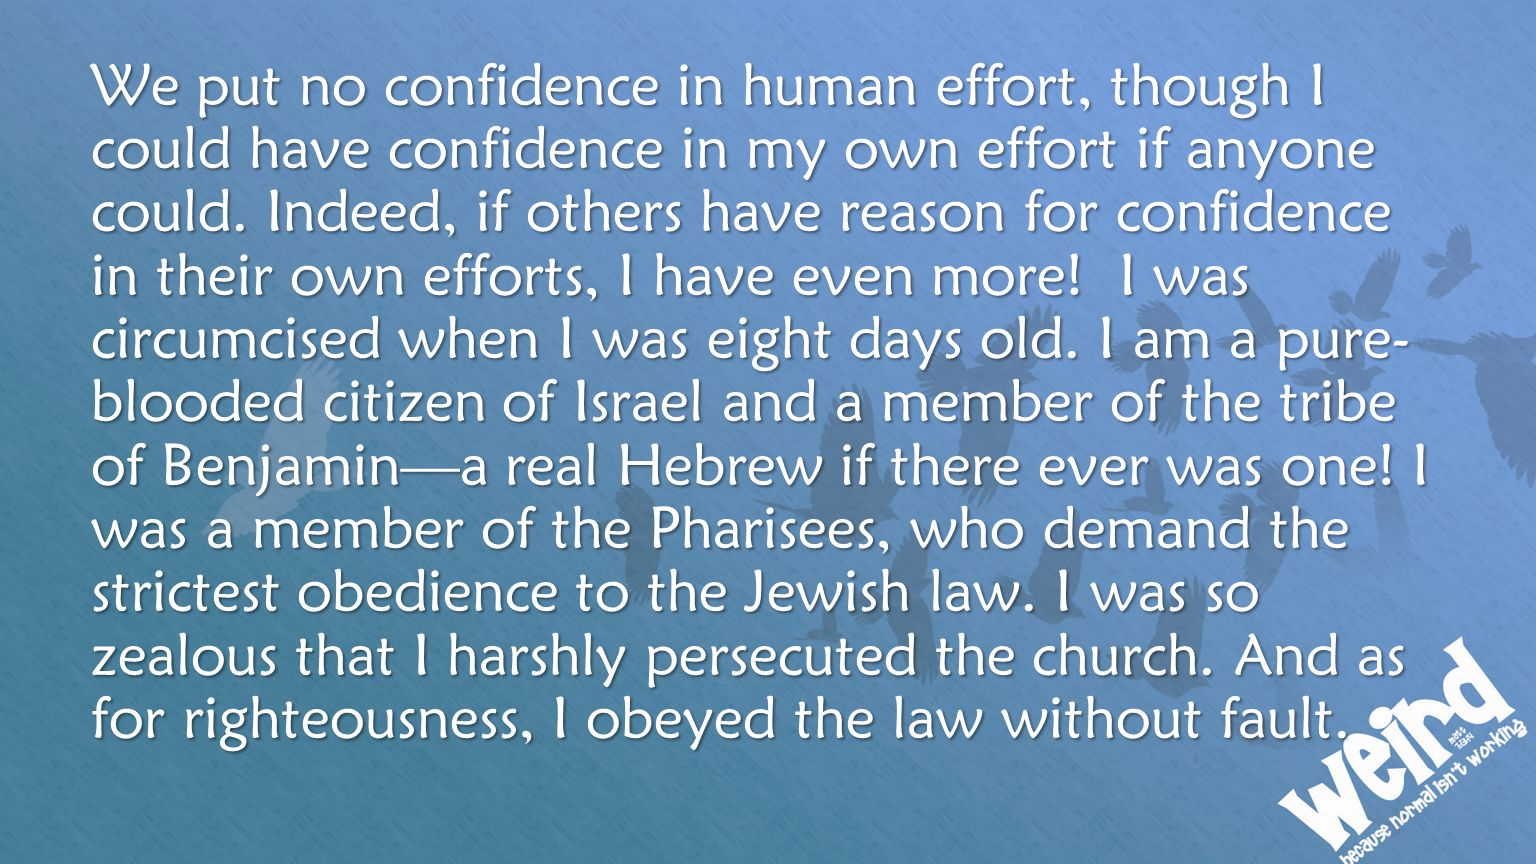 We put no confidence in human effort, though I could have confidence in my own effort if anyone could.